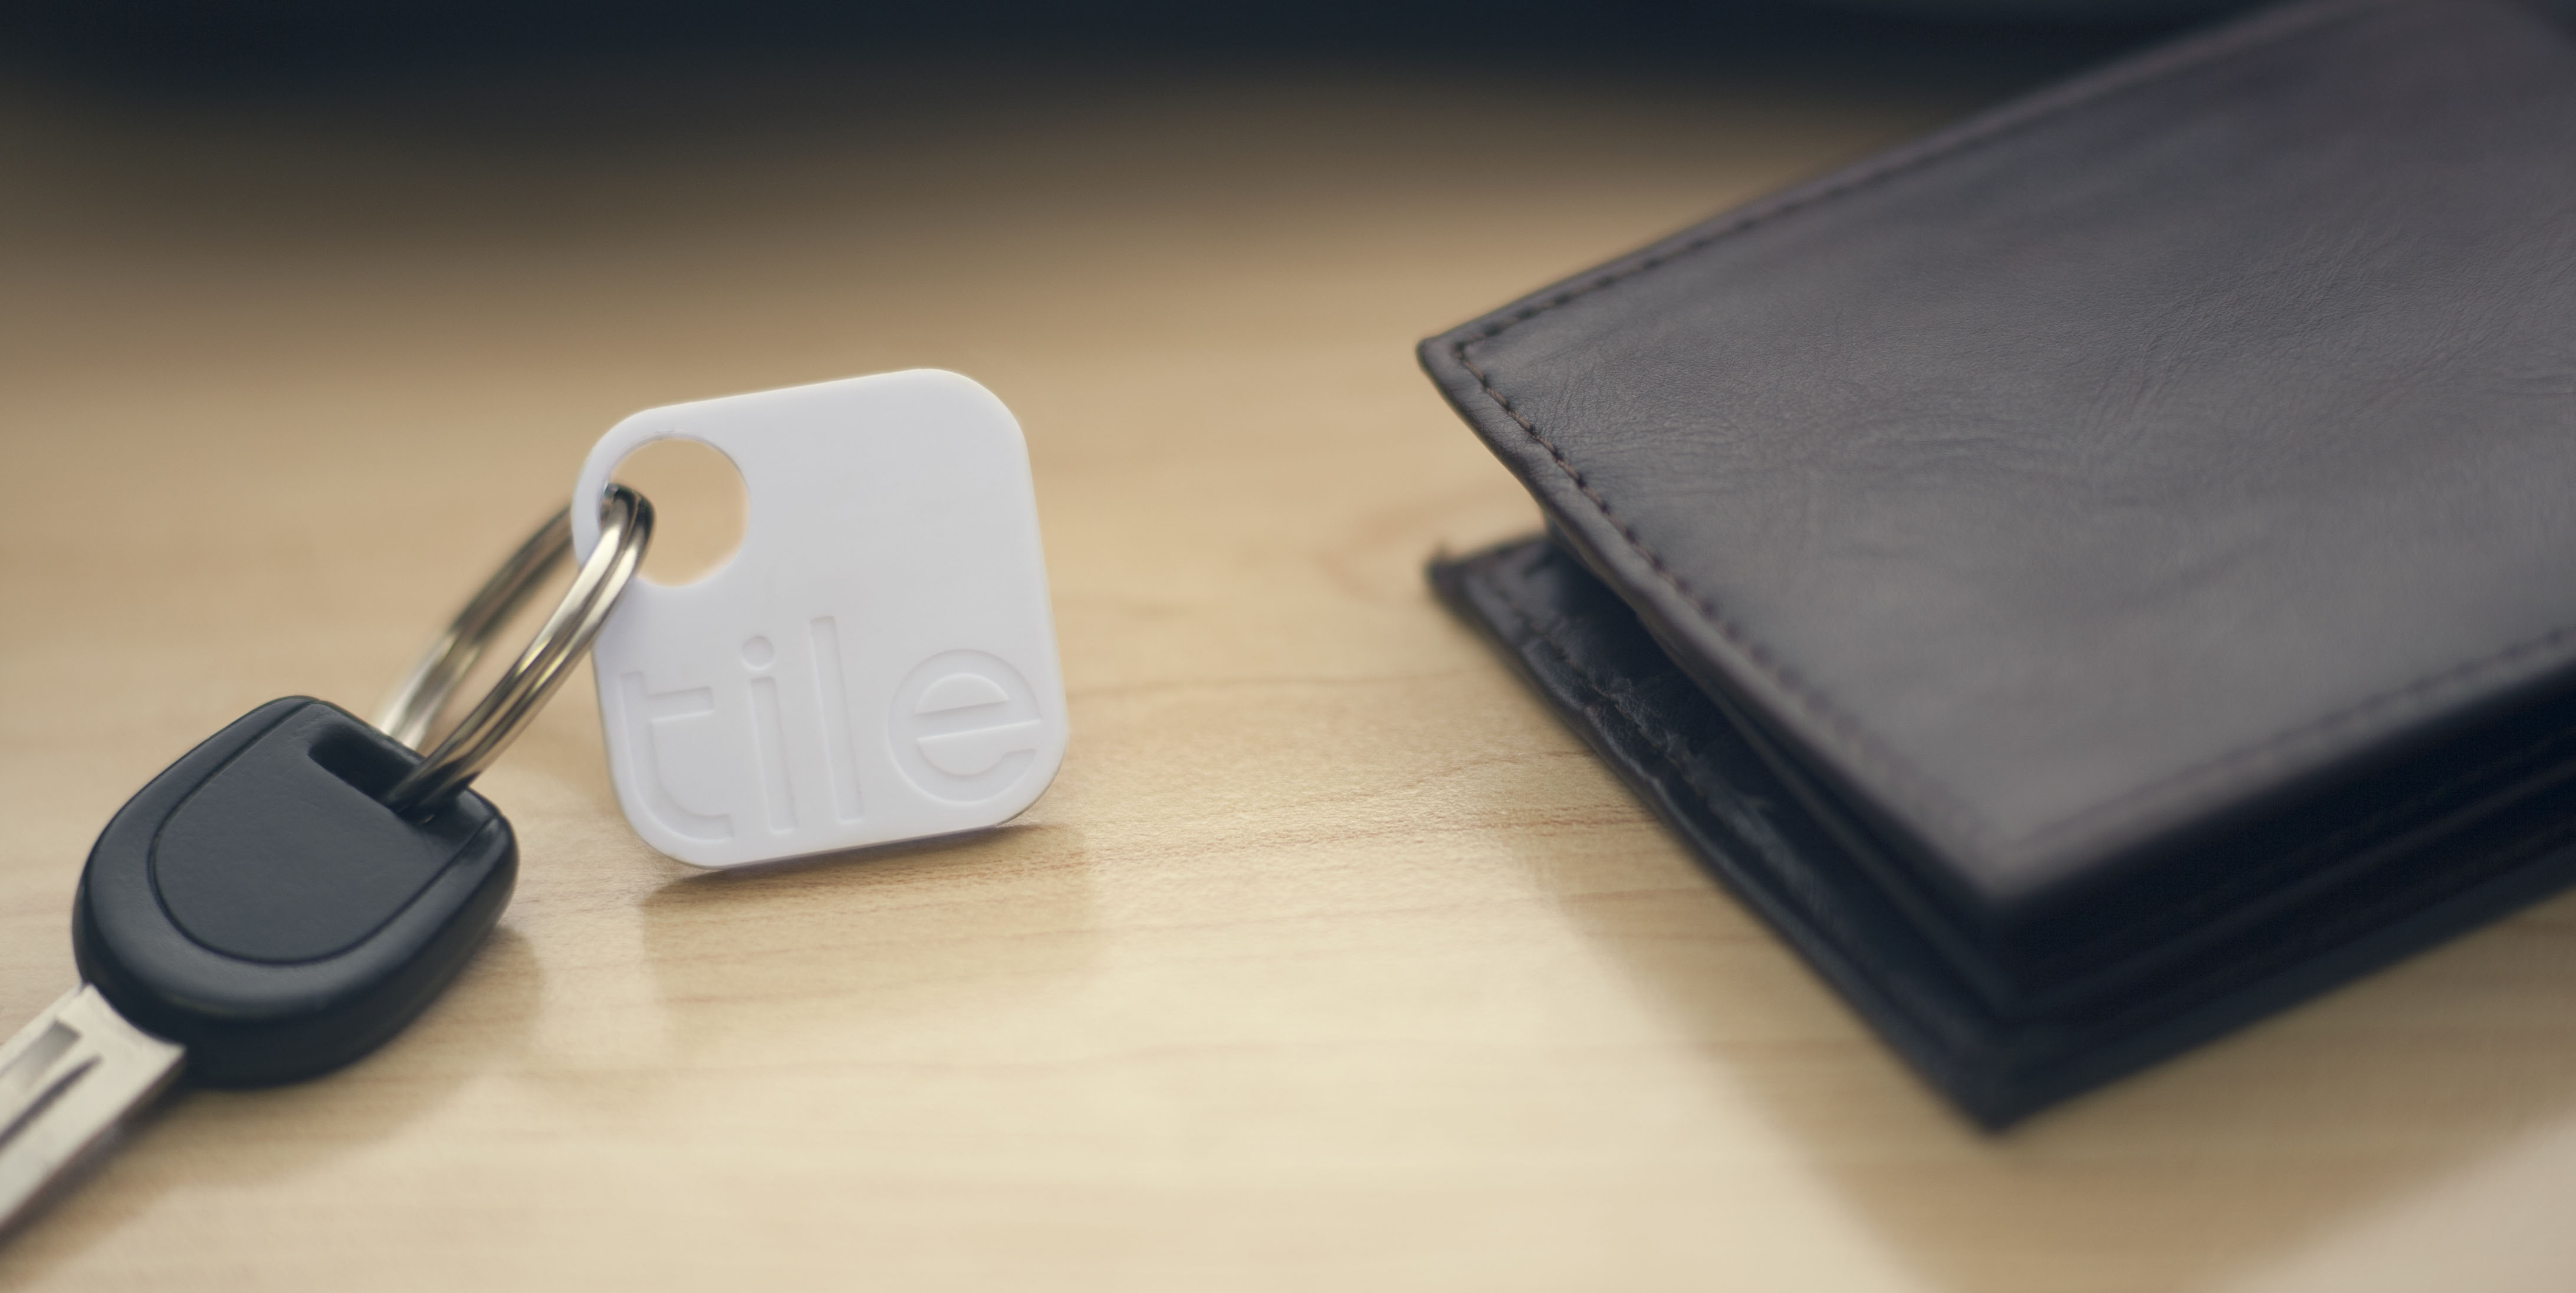 Never Lose Your Stuff Again With Tile